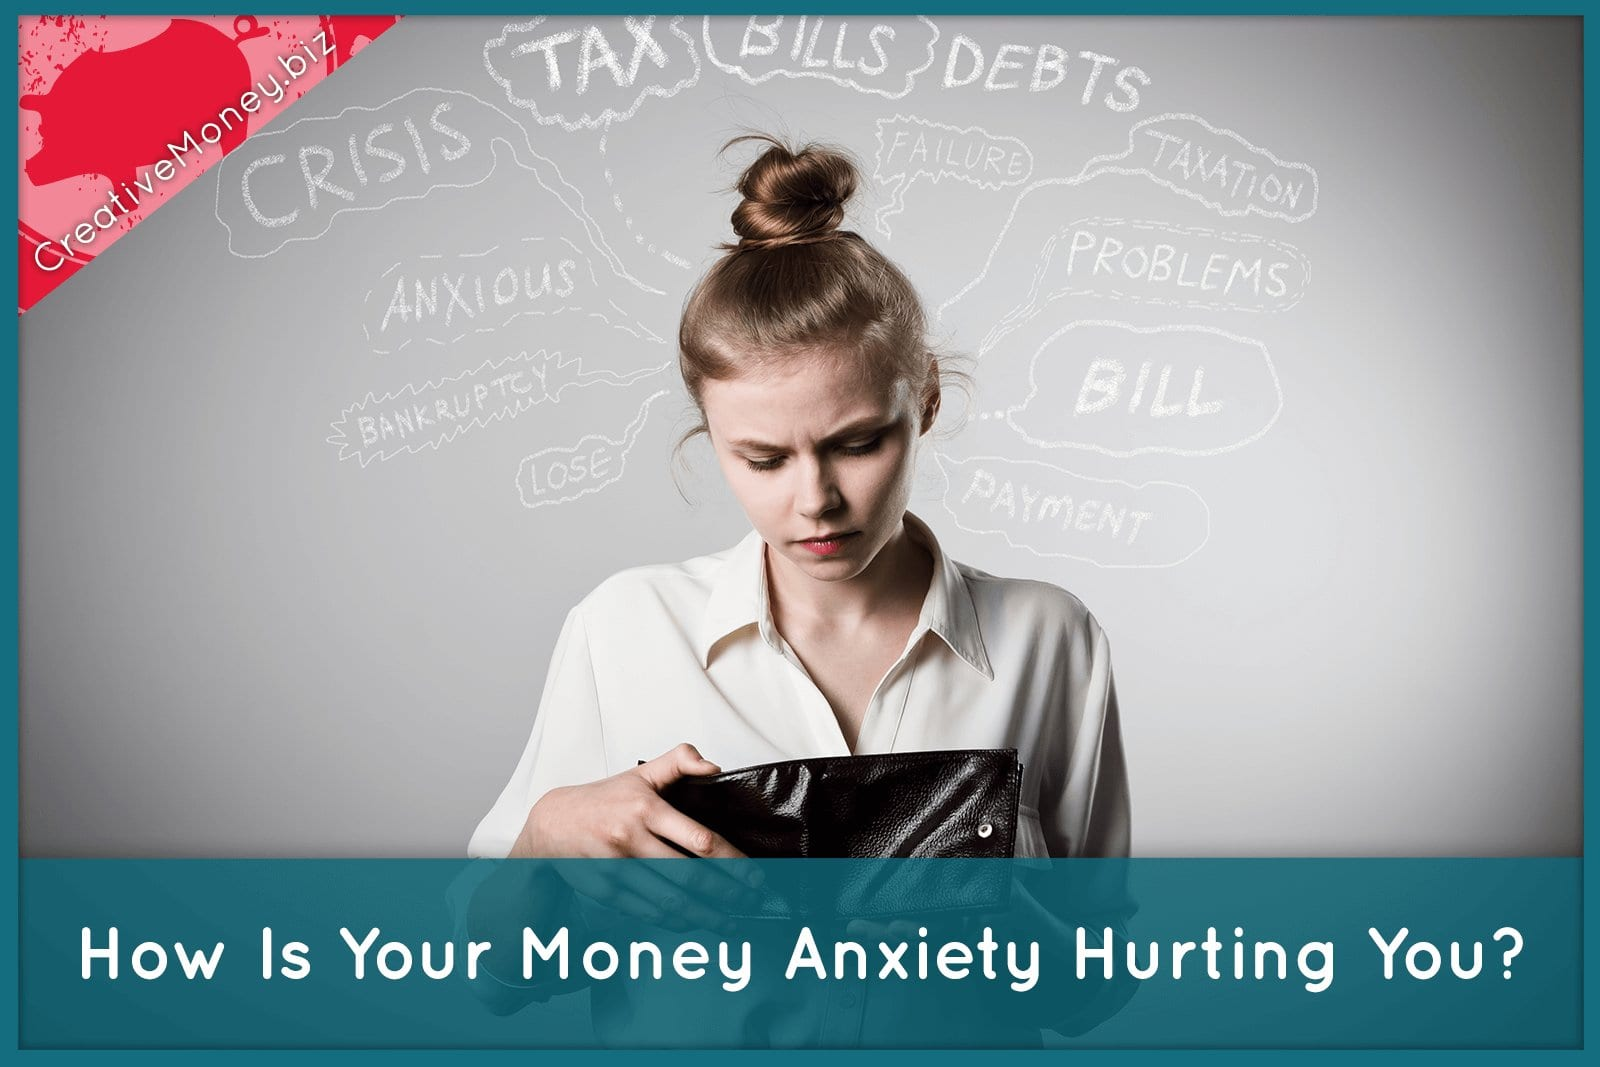 How Is Your Money Anxiety Hurting You